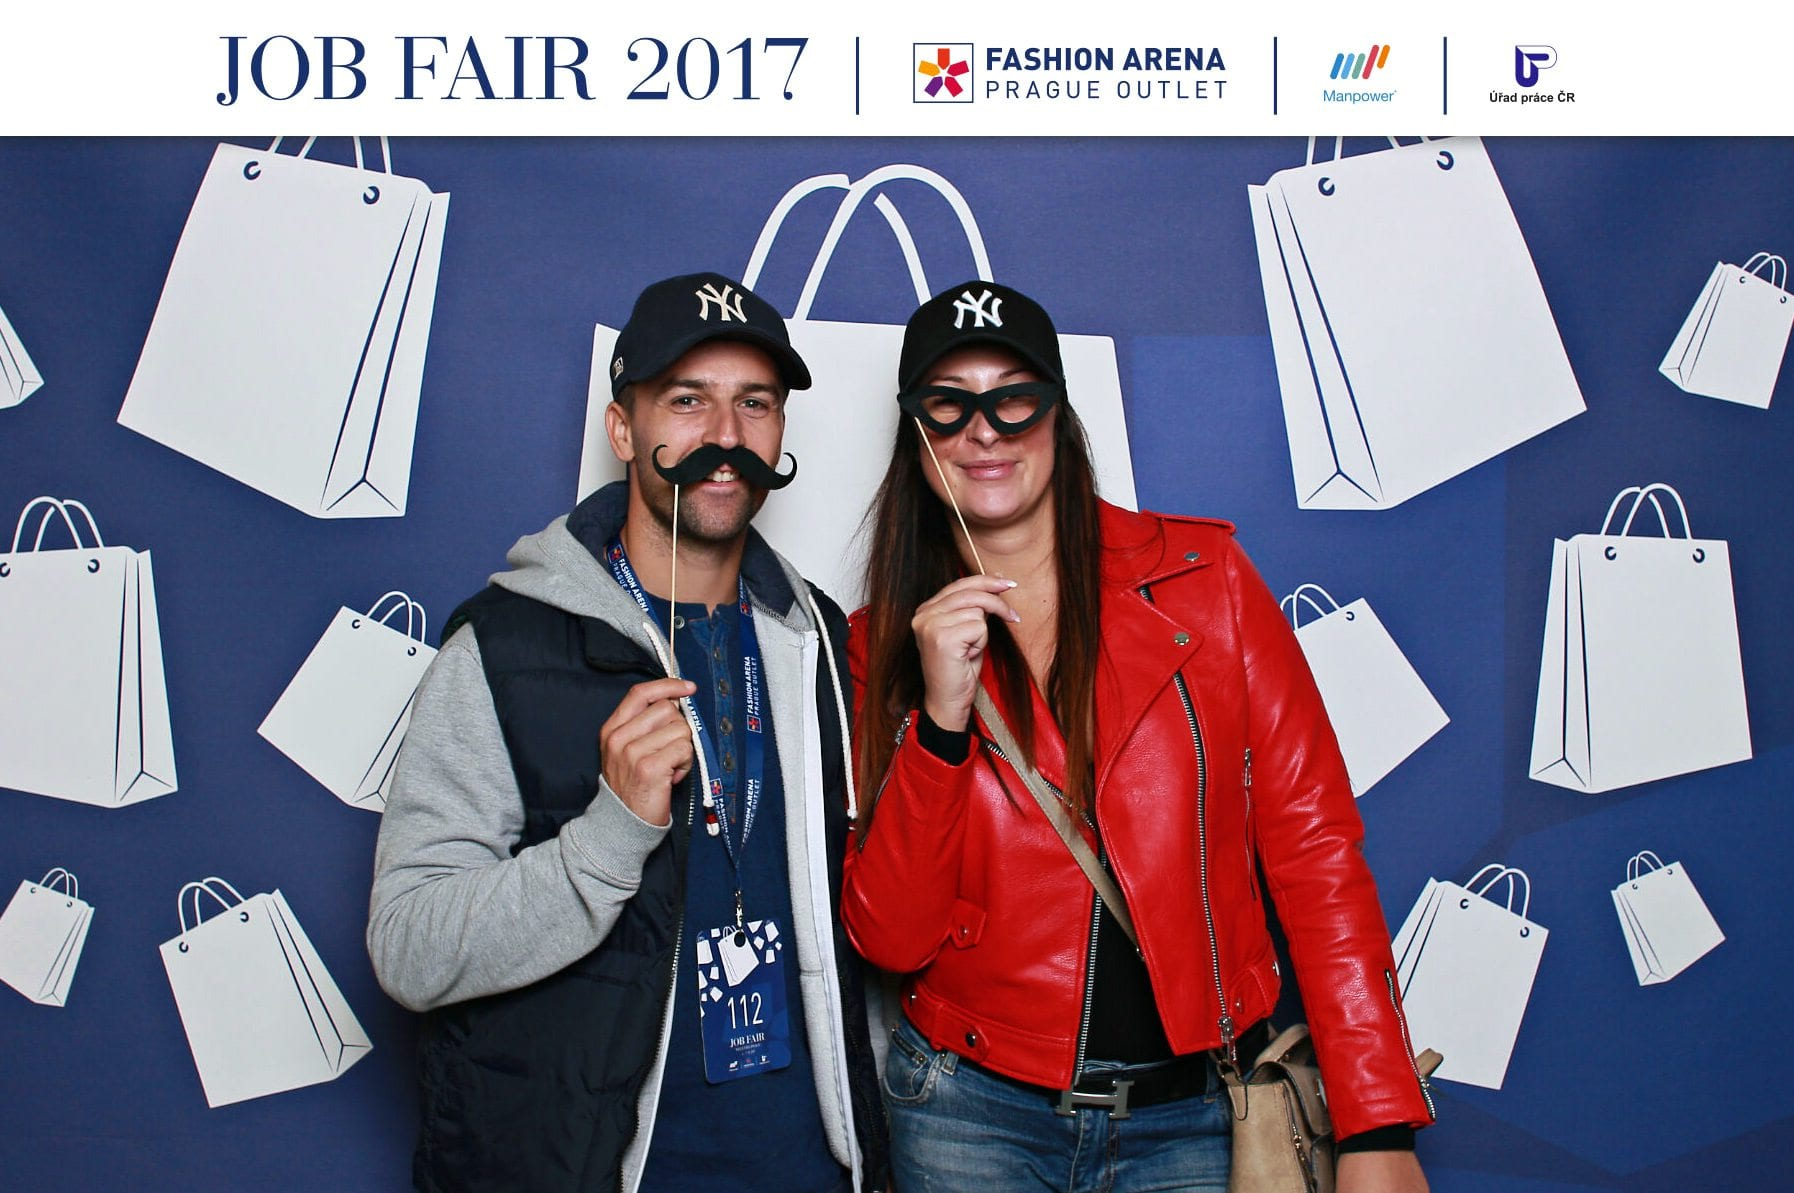 fotokoutek-fashion-arena-job-fair-7-10-2017-324110